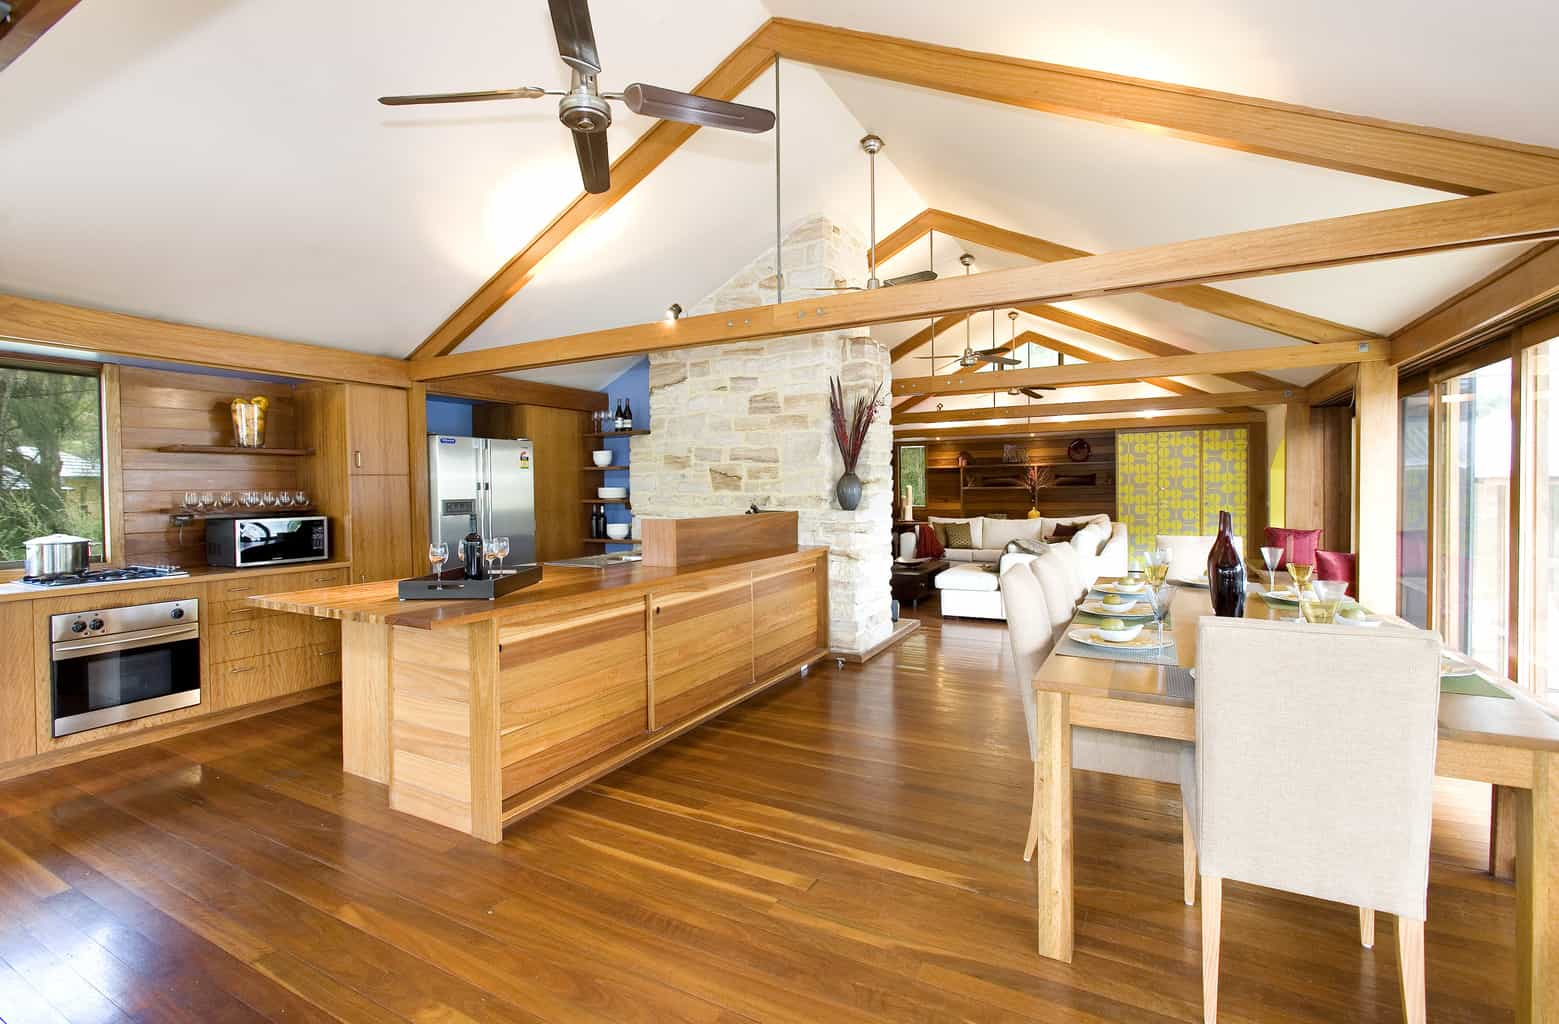 2 cottage point kitchen and dining1